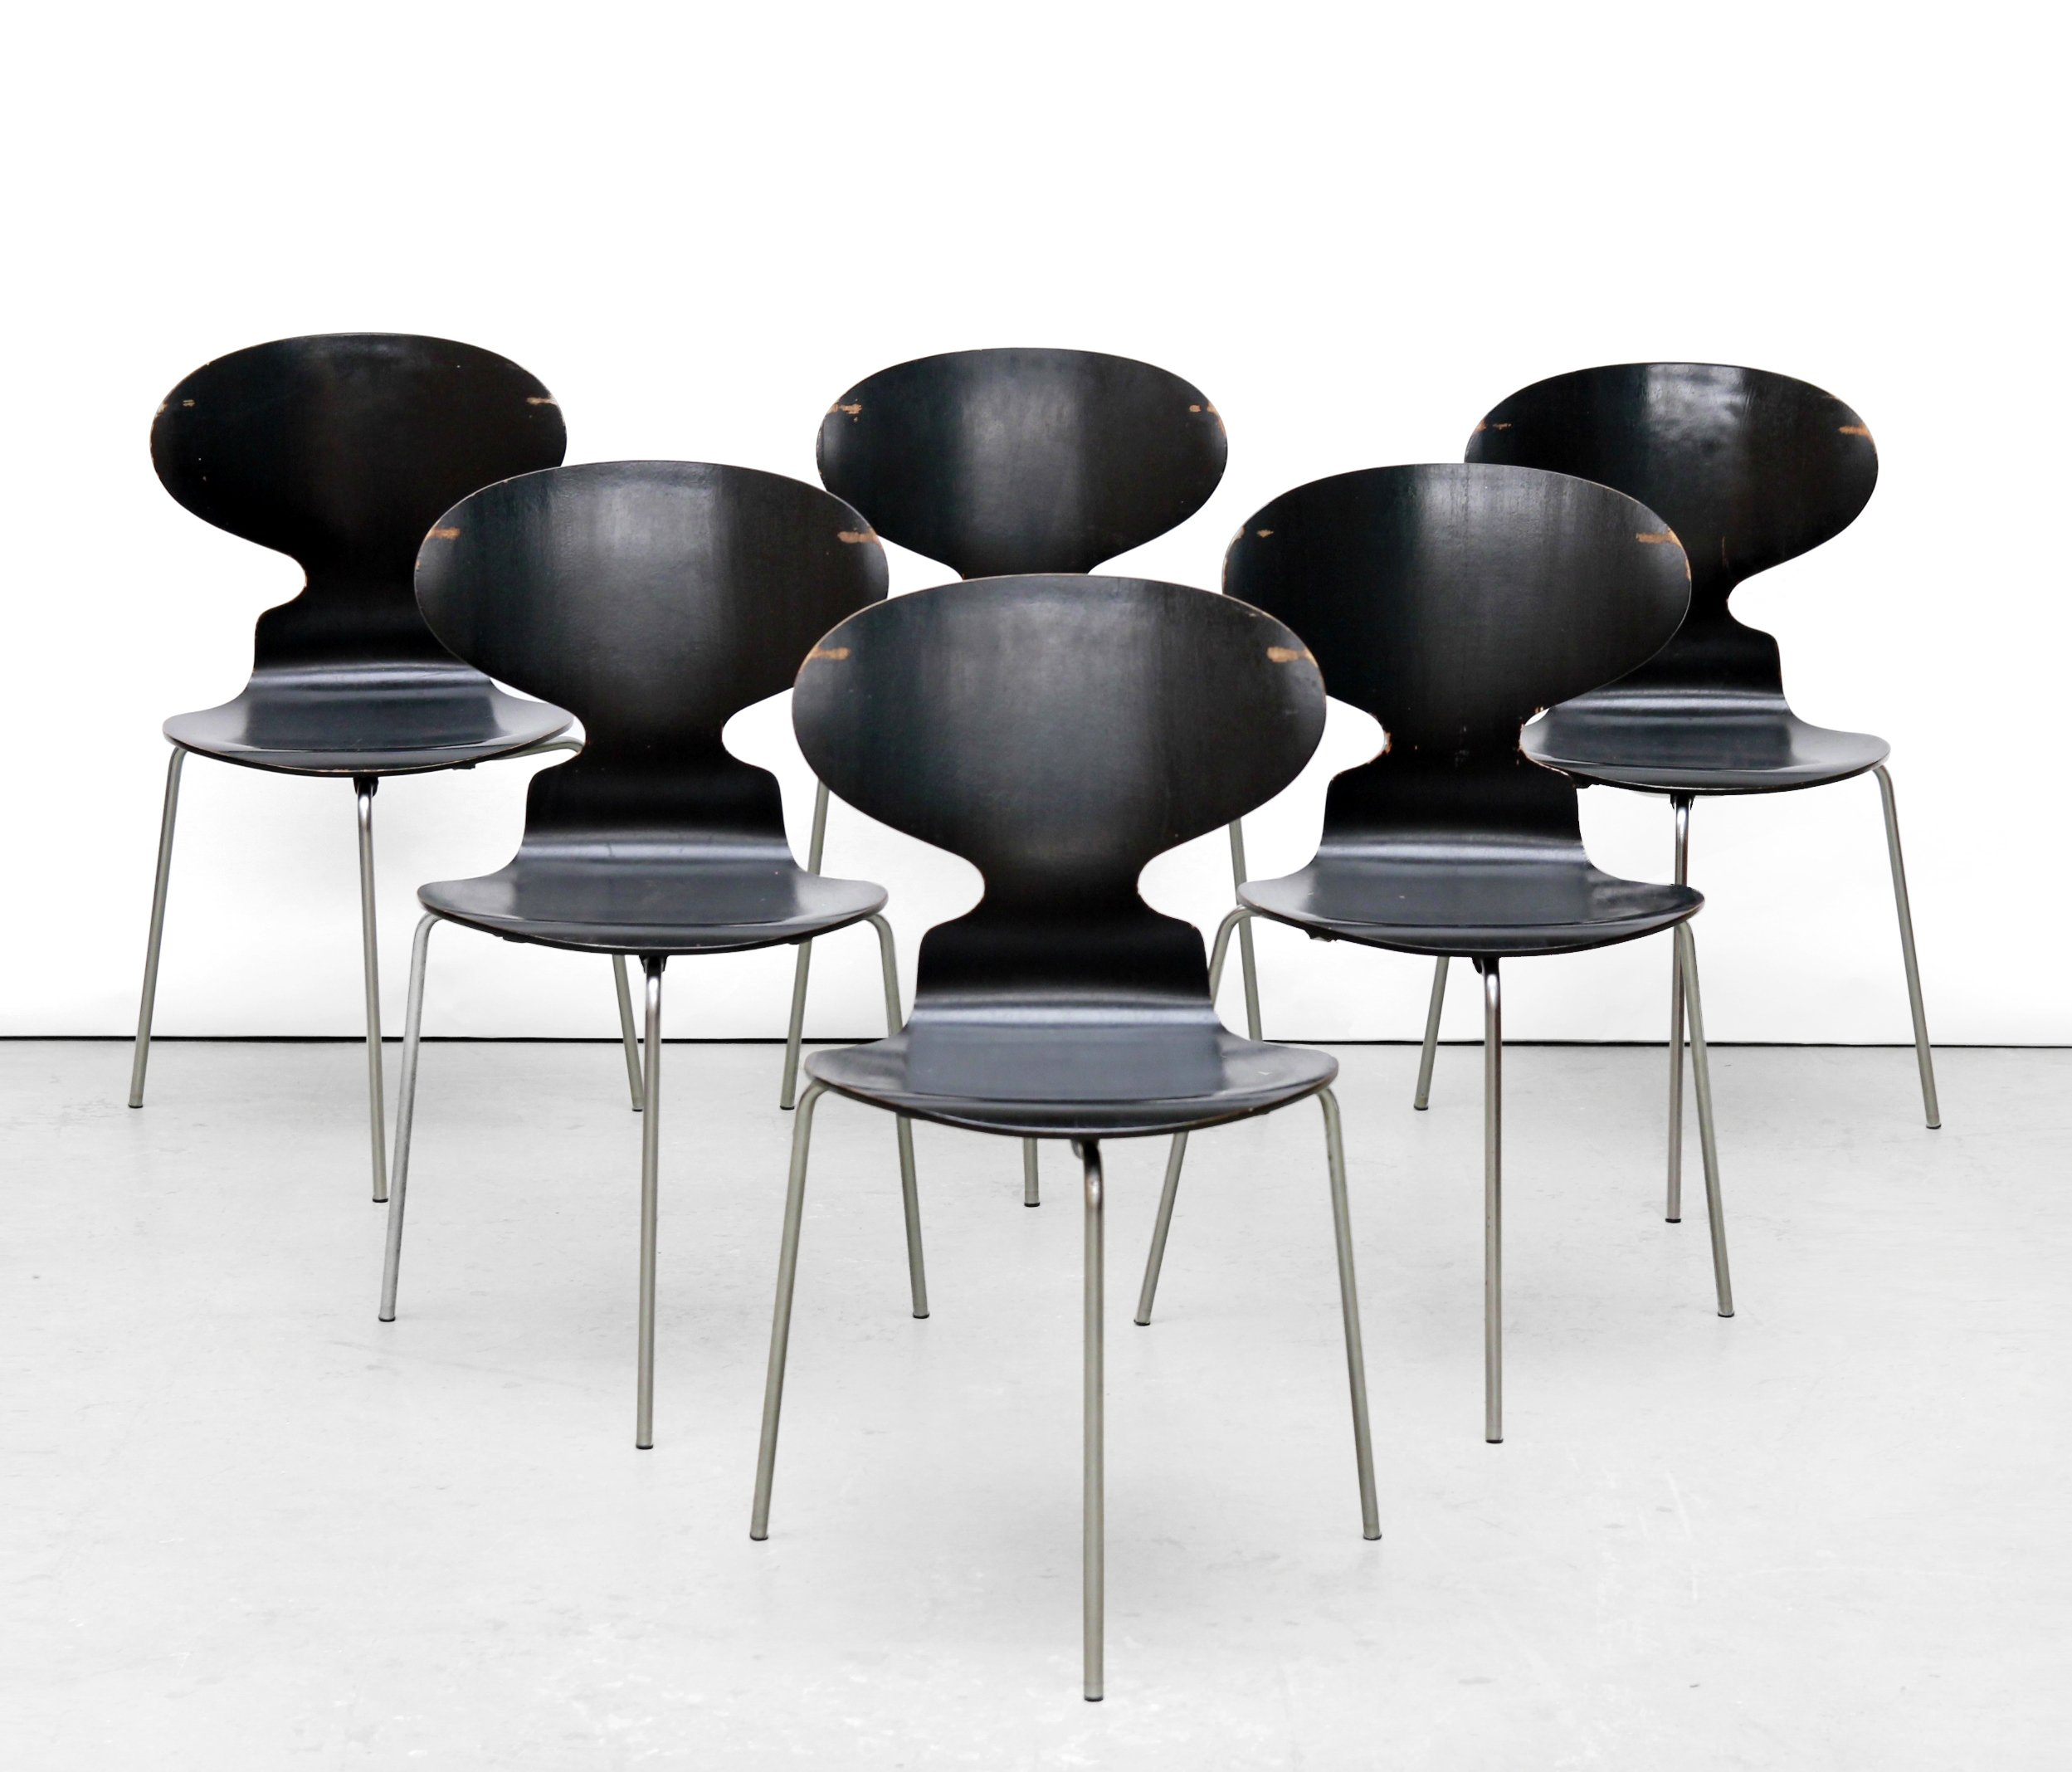 6 x 3100 ant dinner chair by arne jacobsen for fritz. Black Bedroom Furniture Sets. Home Design Ideas